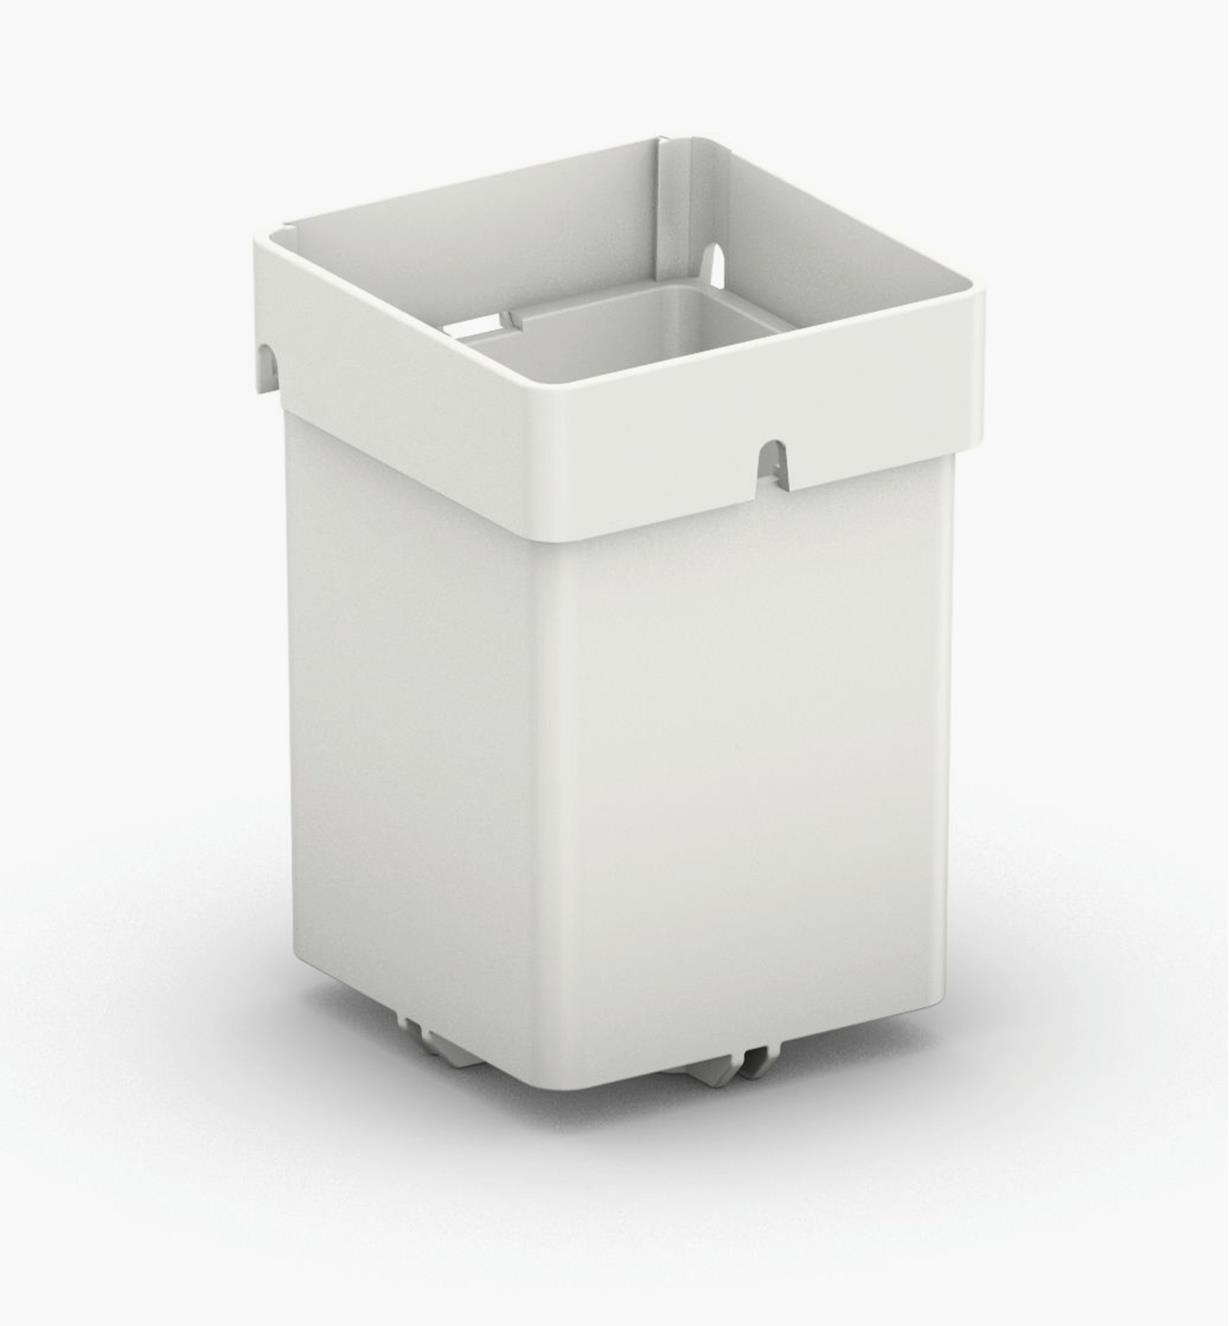 50mm × 50mm × 68mm Bins, pkg. of 10